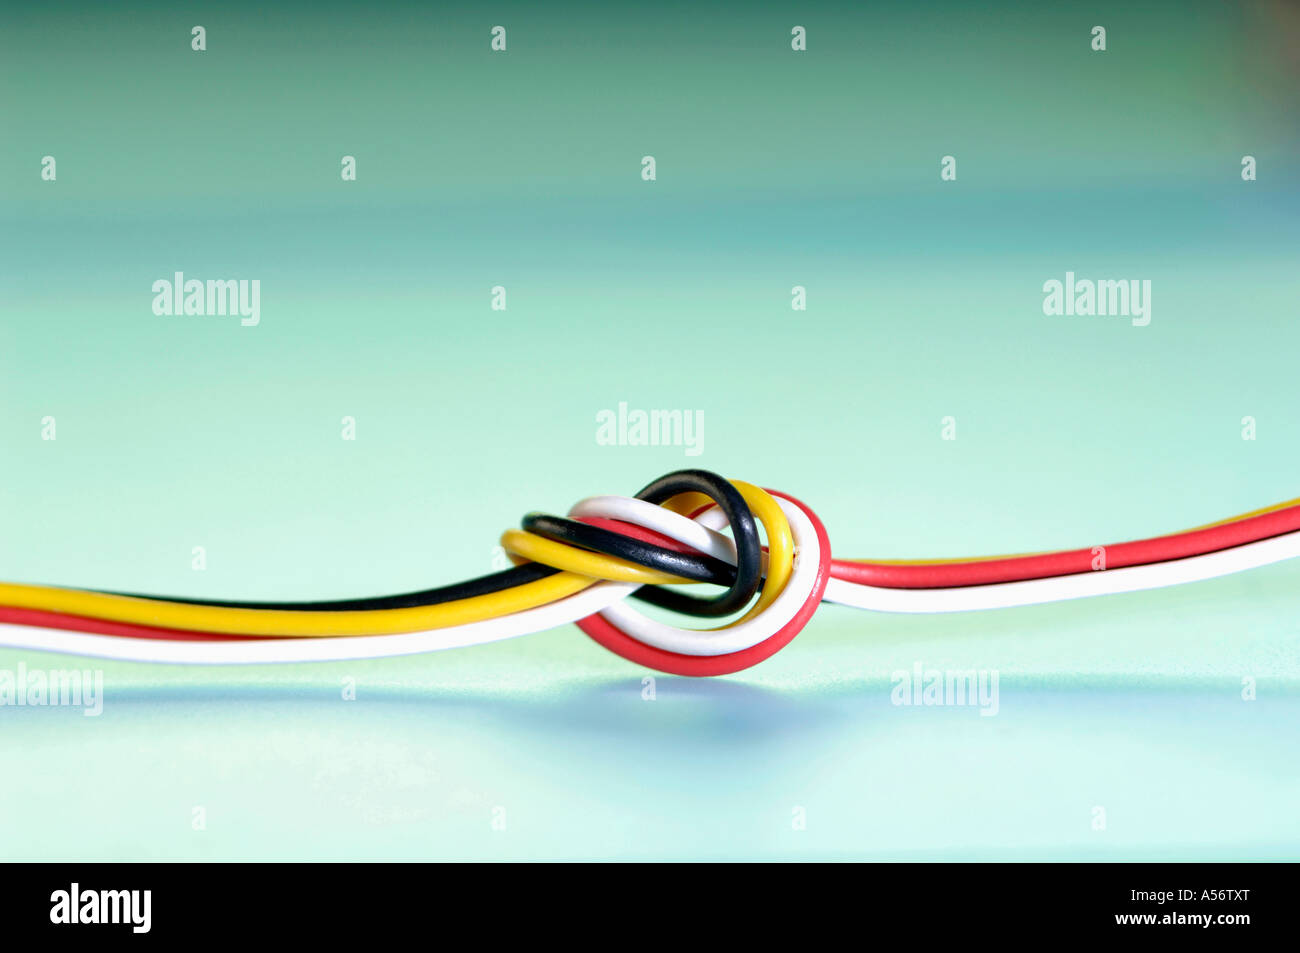 Colored Wires Stock Photos & Colored Wires Stock Images - Alamy